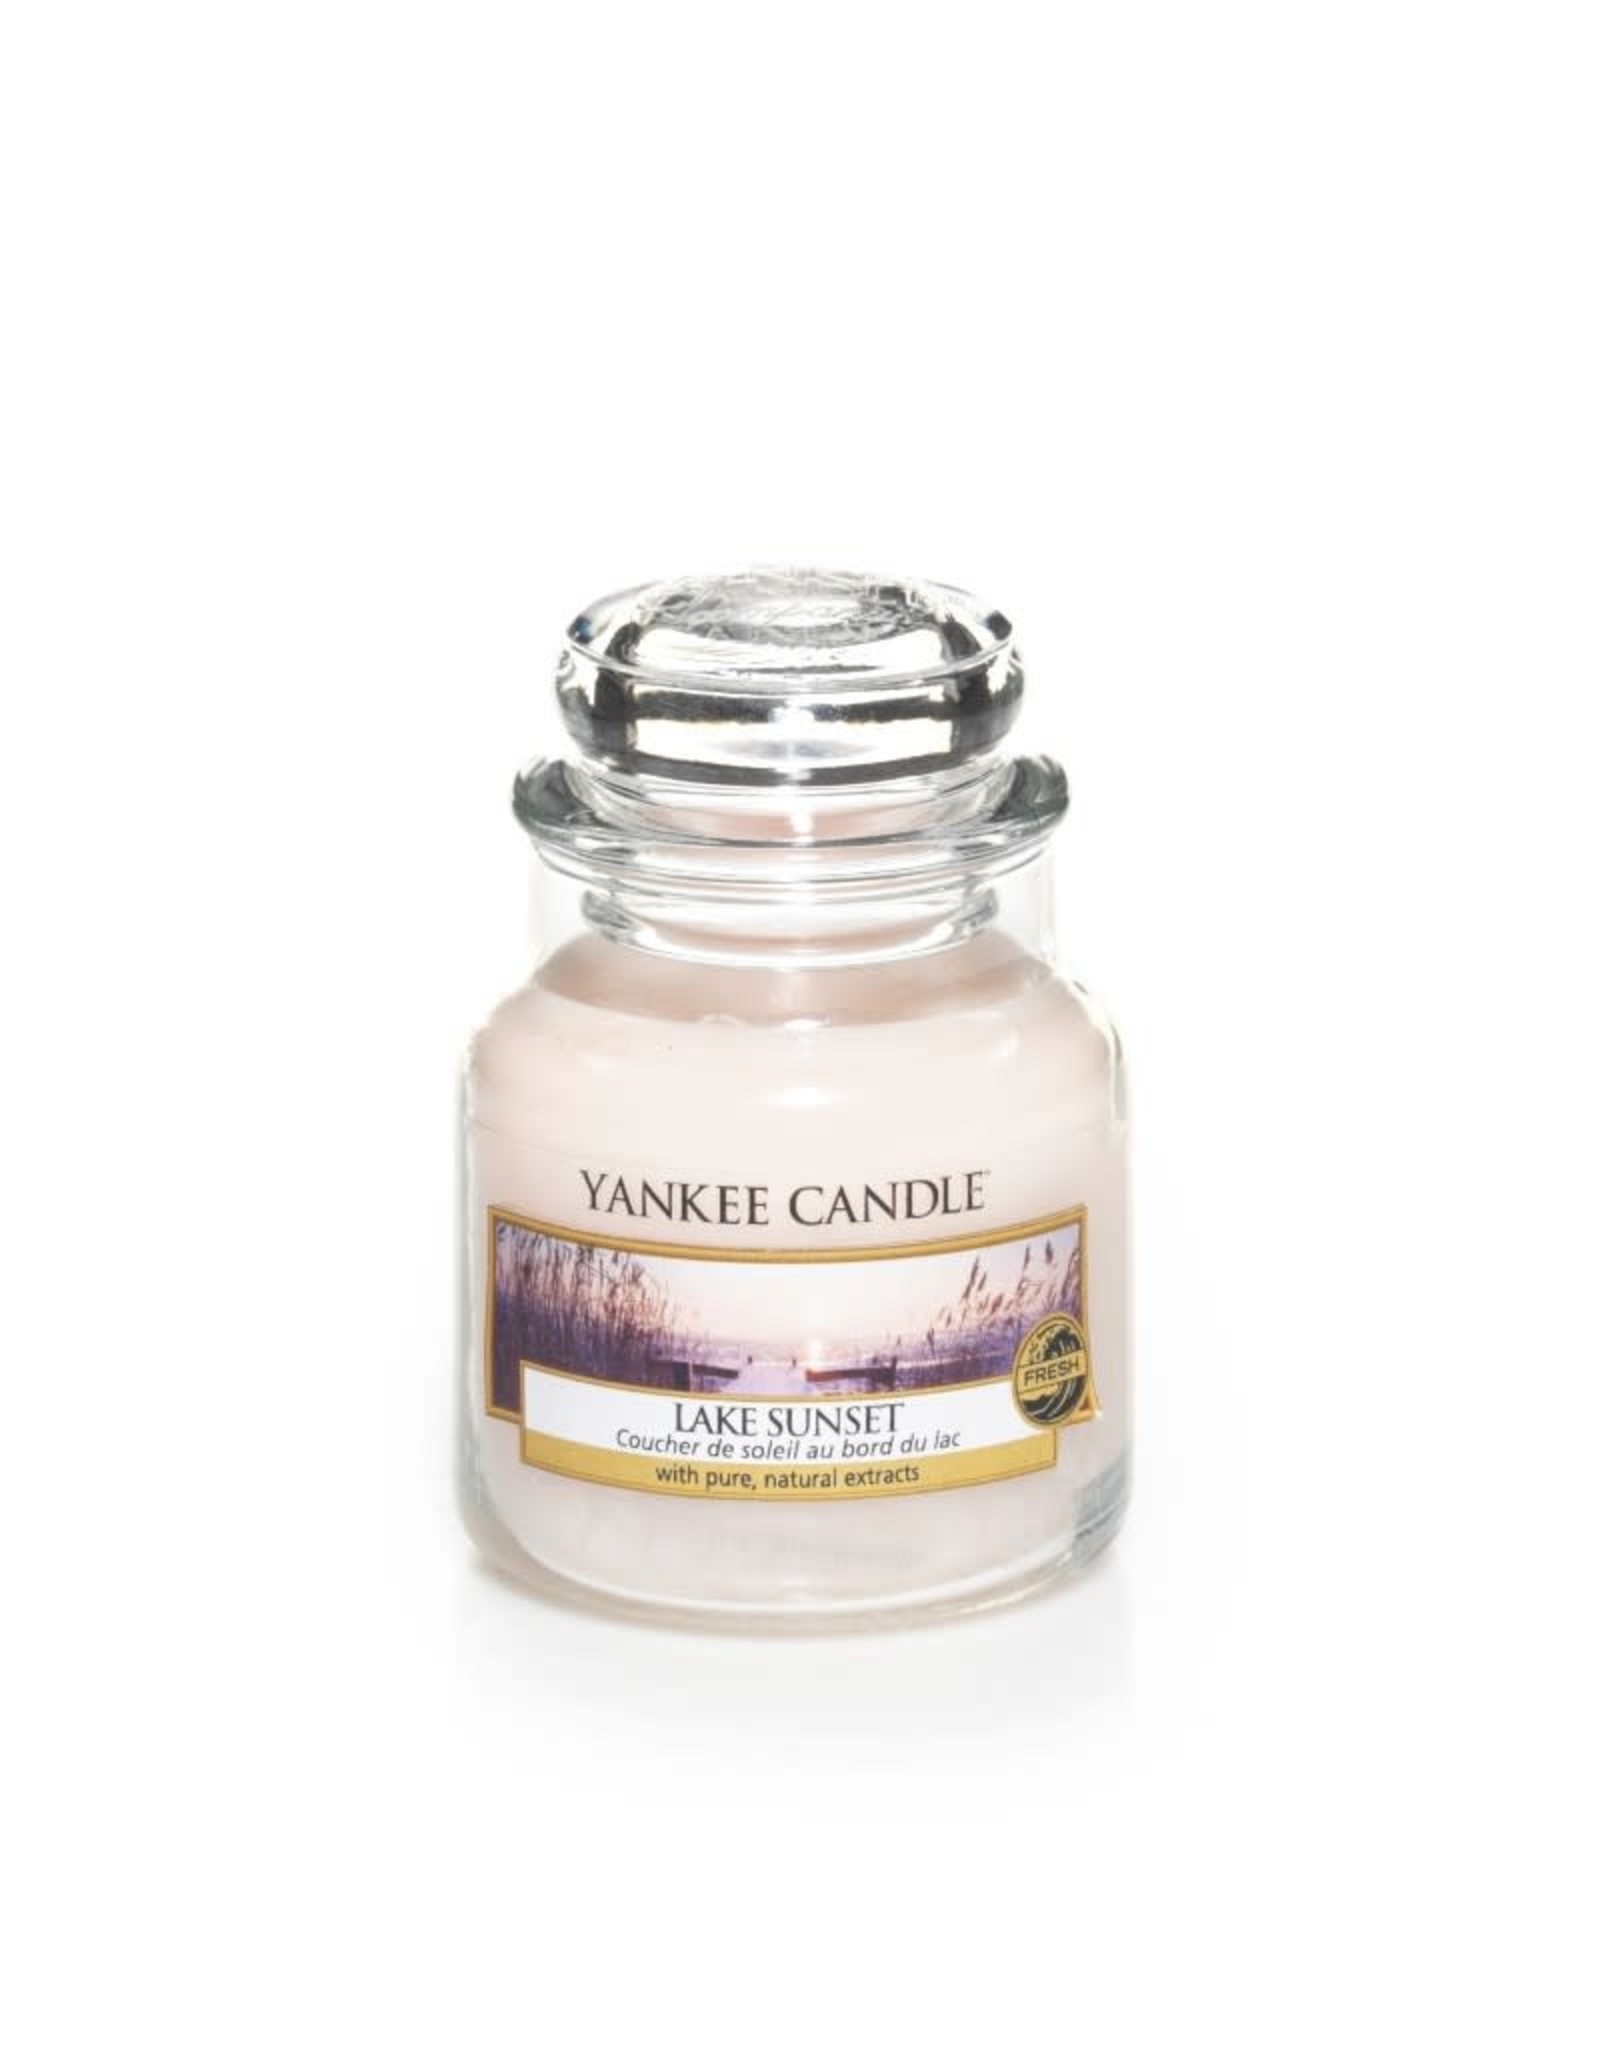 Yankee Candle Lake sunset Yankee Candle Small